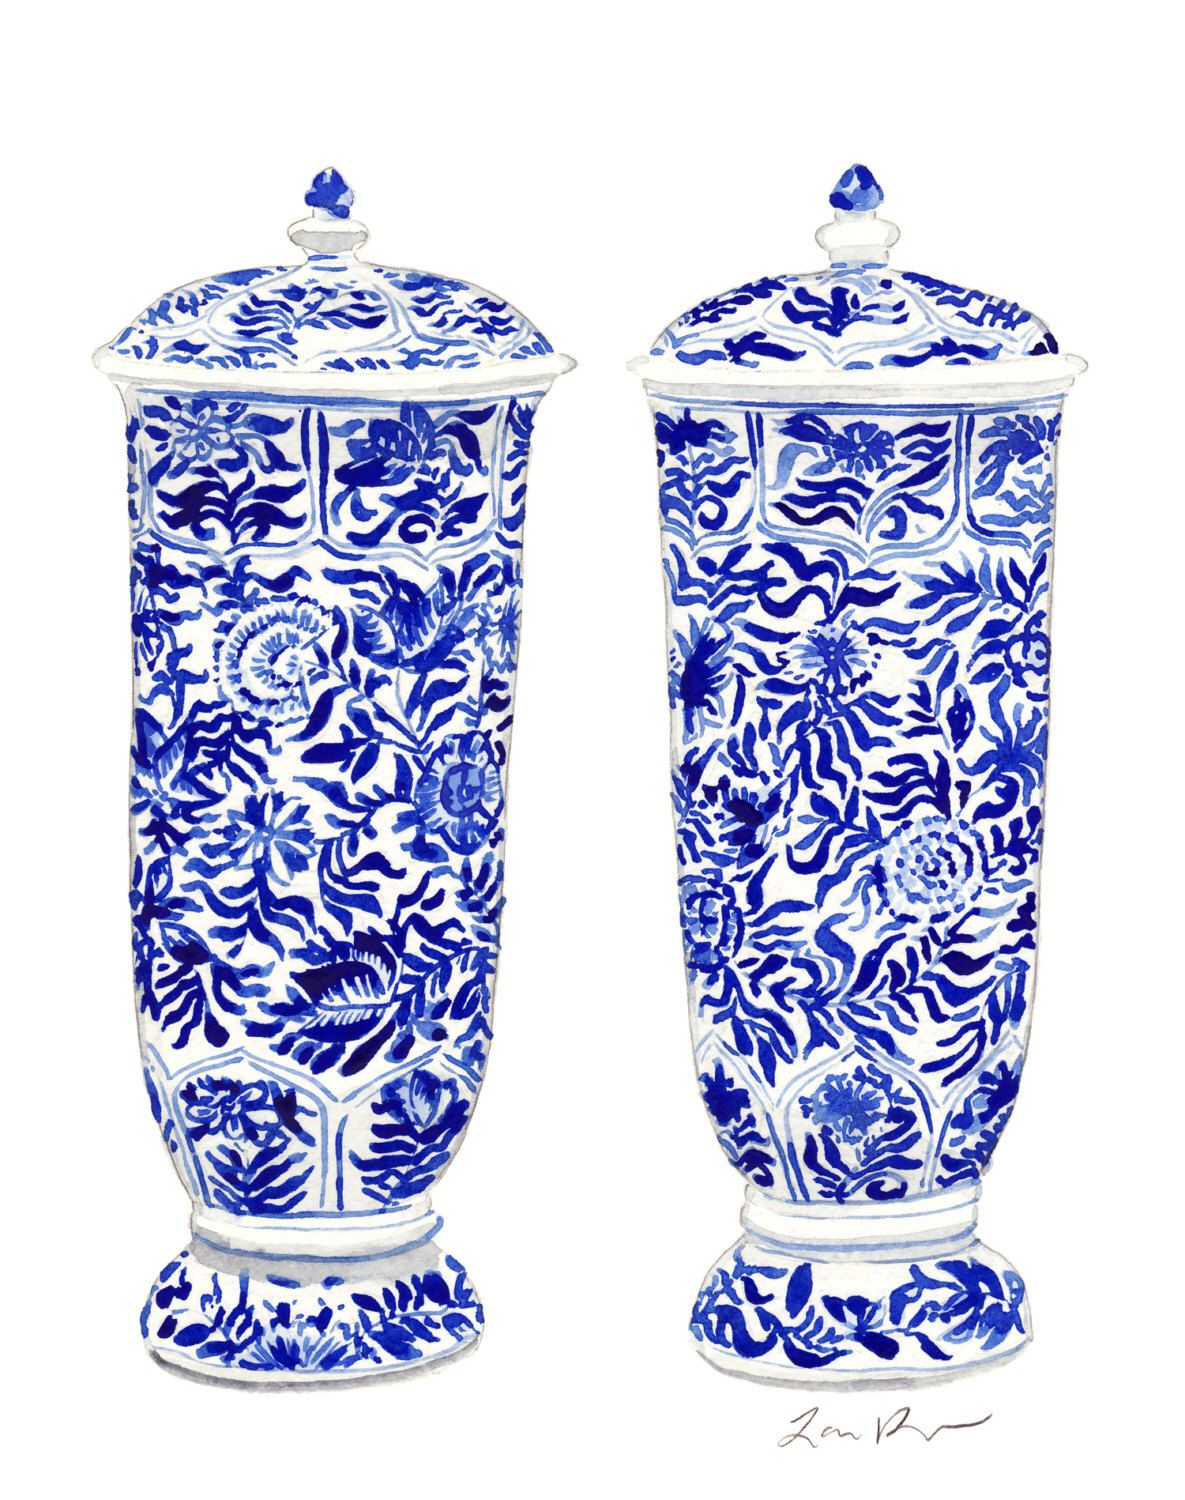 dcce4b4ef86 Blue and White Ginger Jar Vases - Original Watercolor 8 x 10 - Cobalt Home  Decor